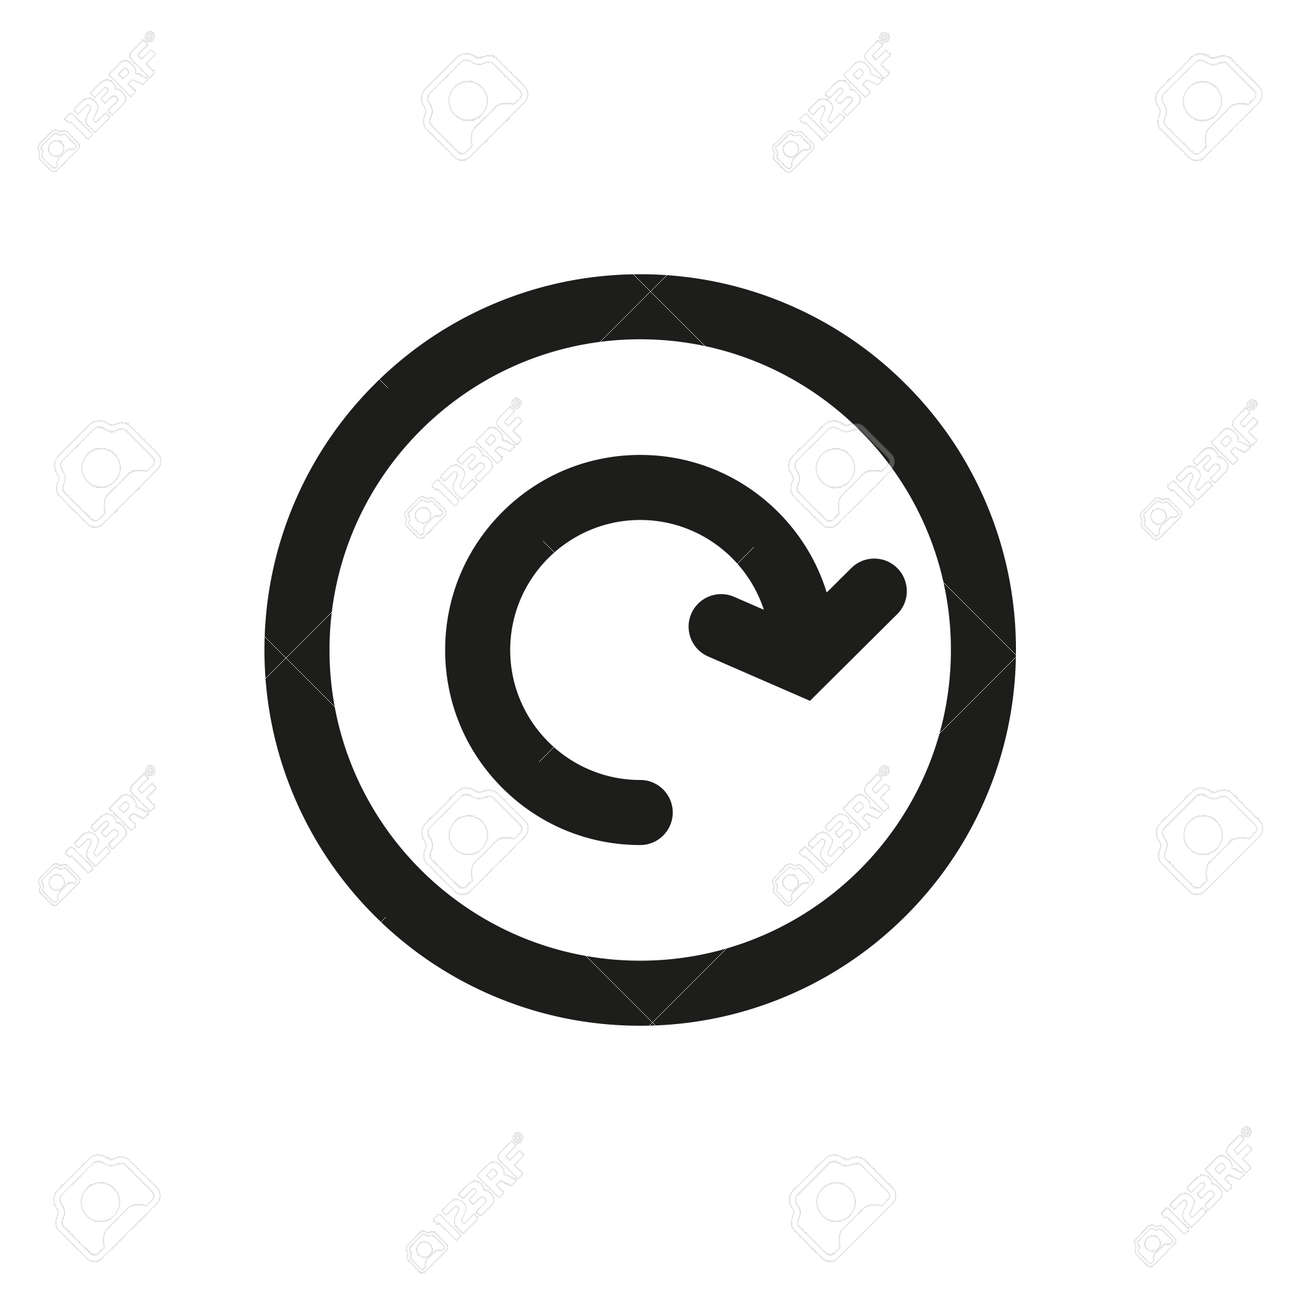 Arrow icon in a circle on a white background. - 158067537